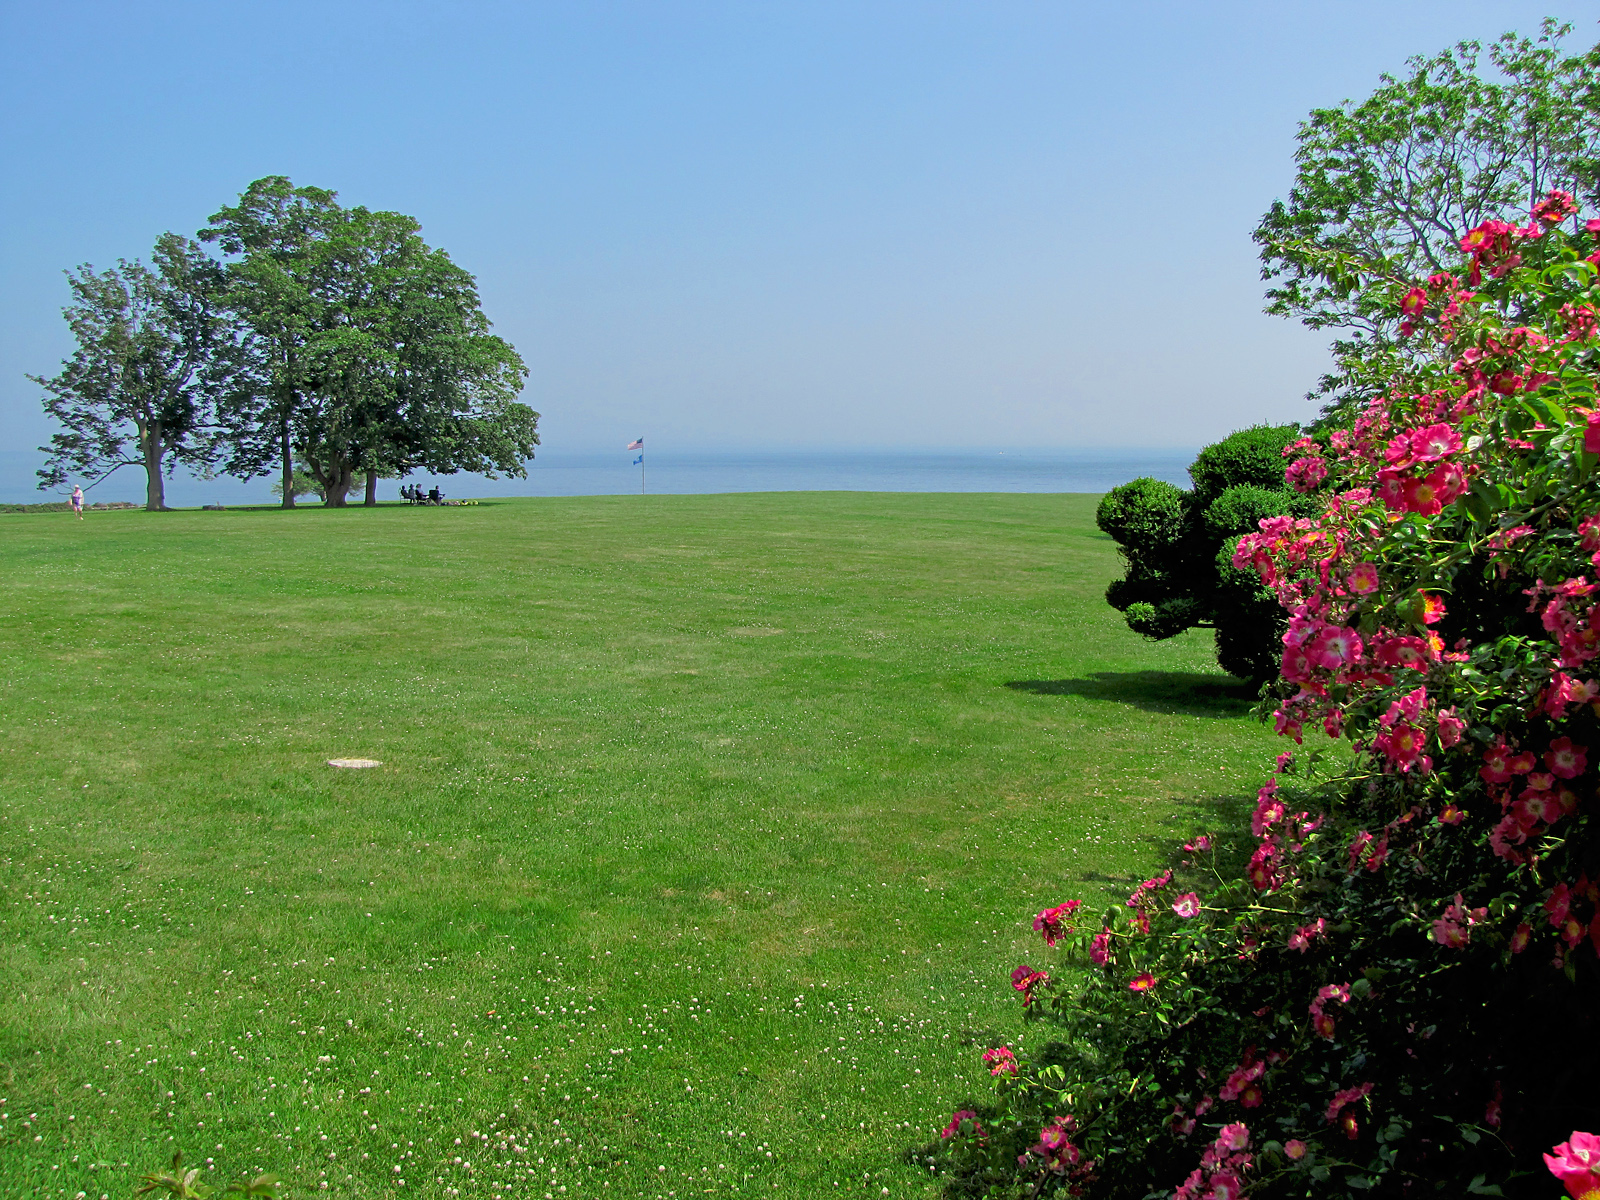 Eolia Mansion At Harkness Memorial State Park On